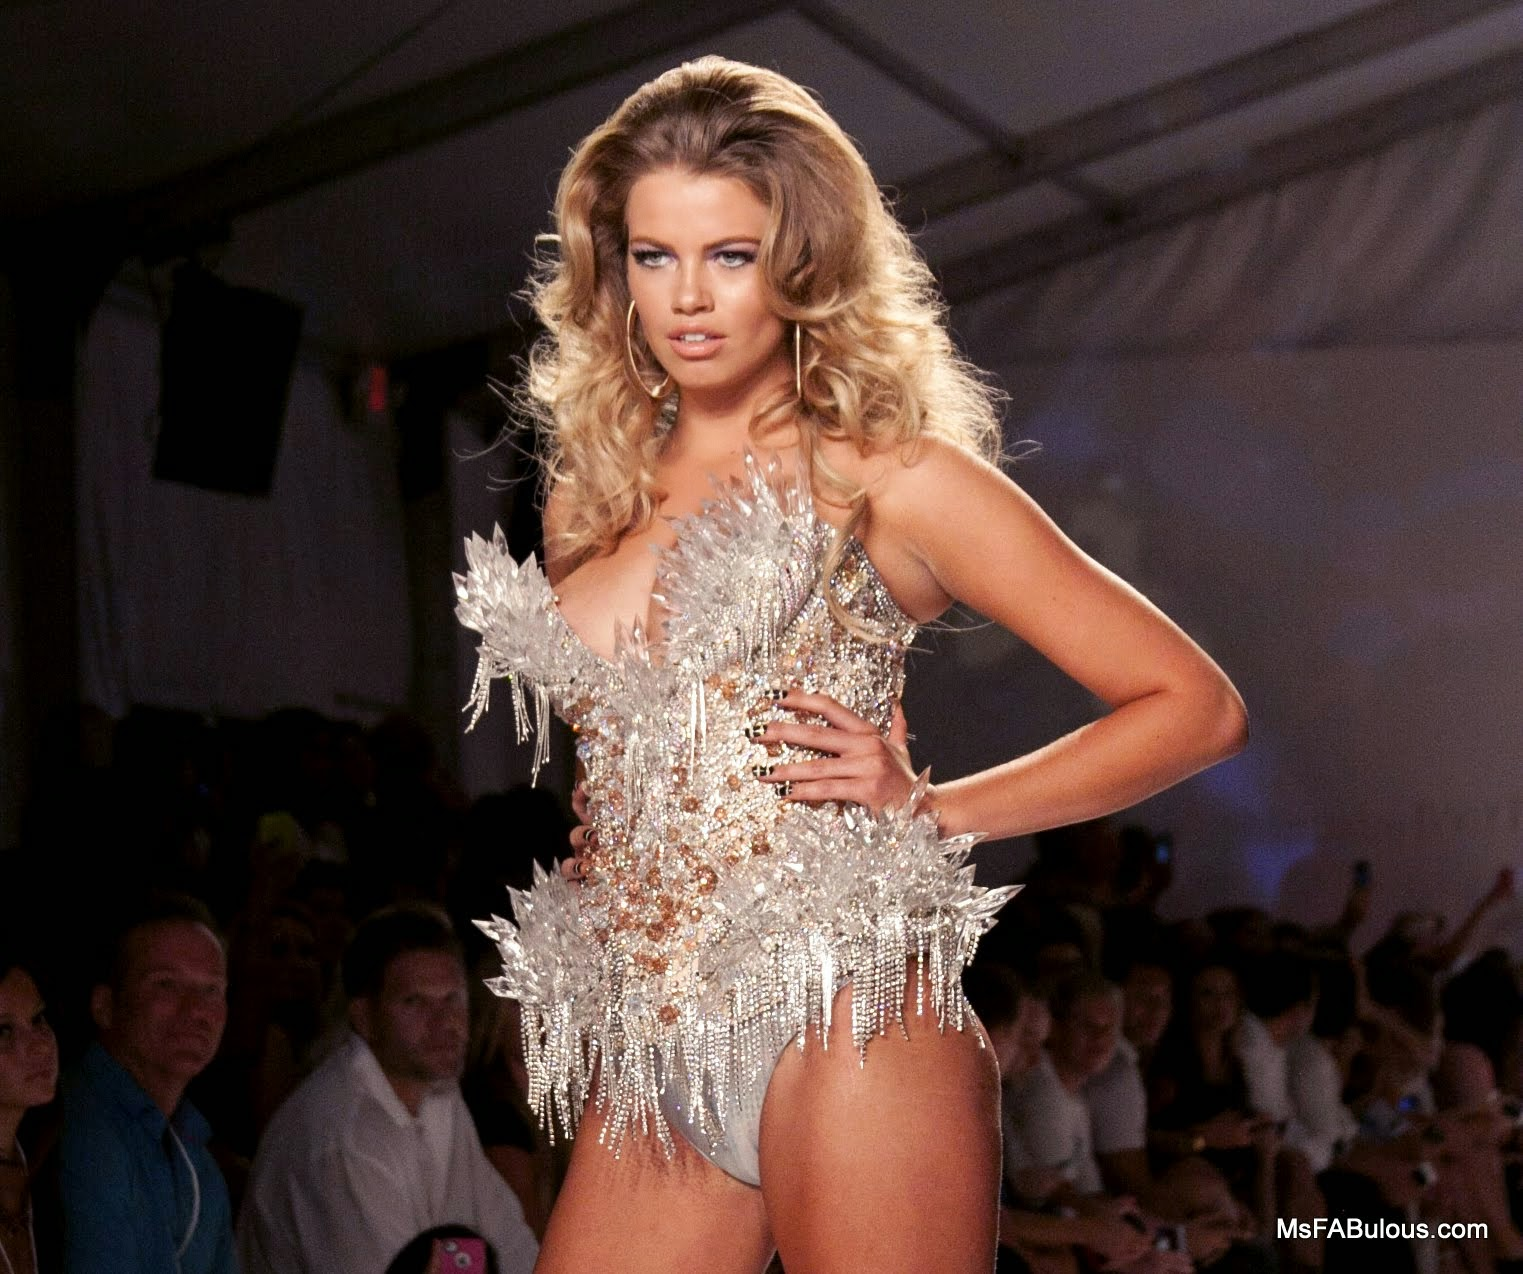 MIAMI FASHION WEEK: Beach Bunny 2015 Featuring The Blonds